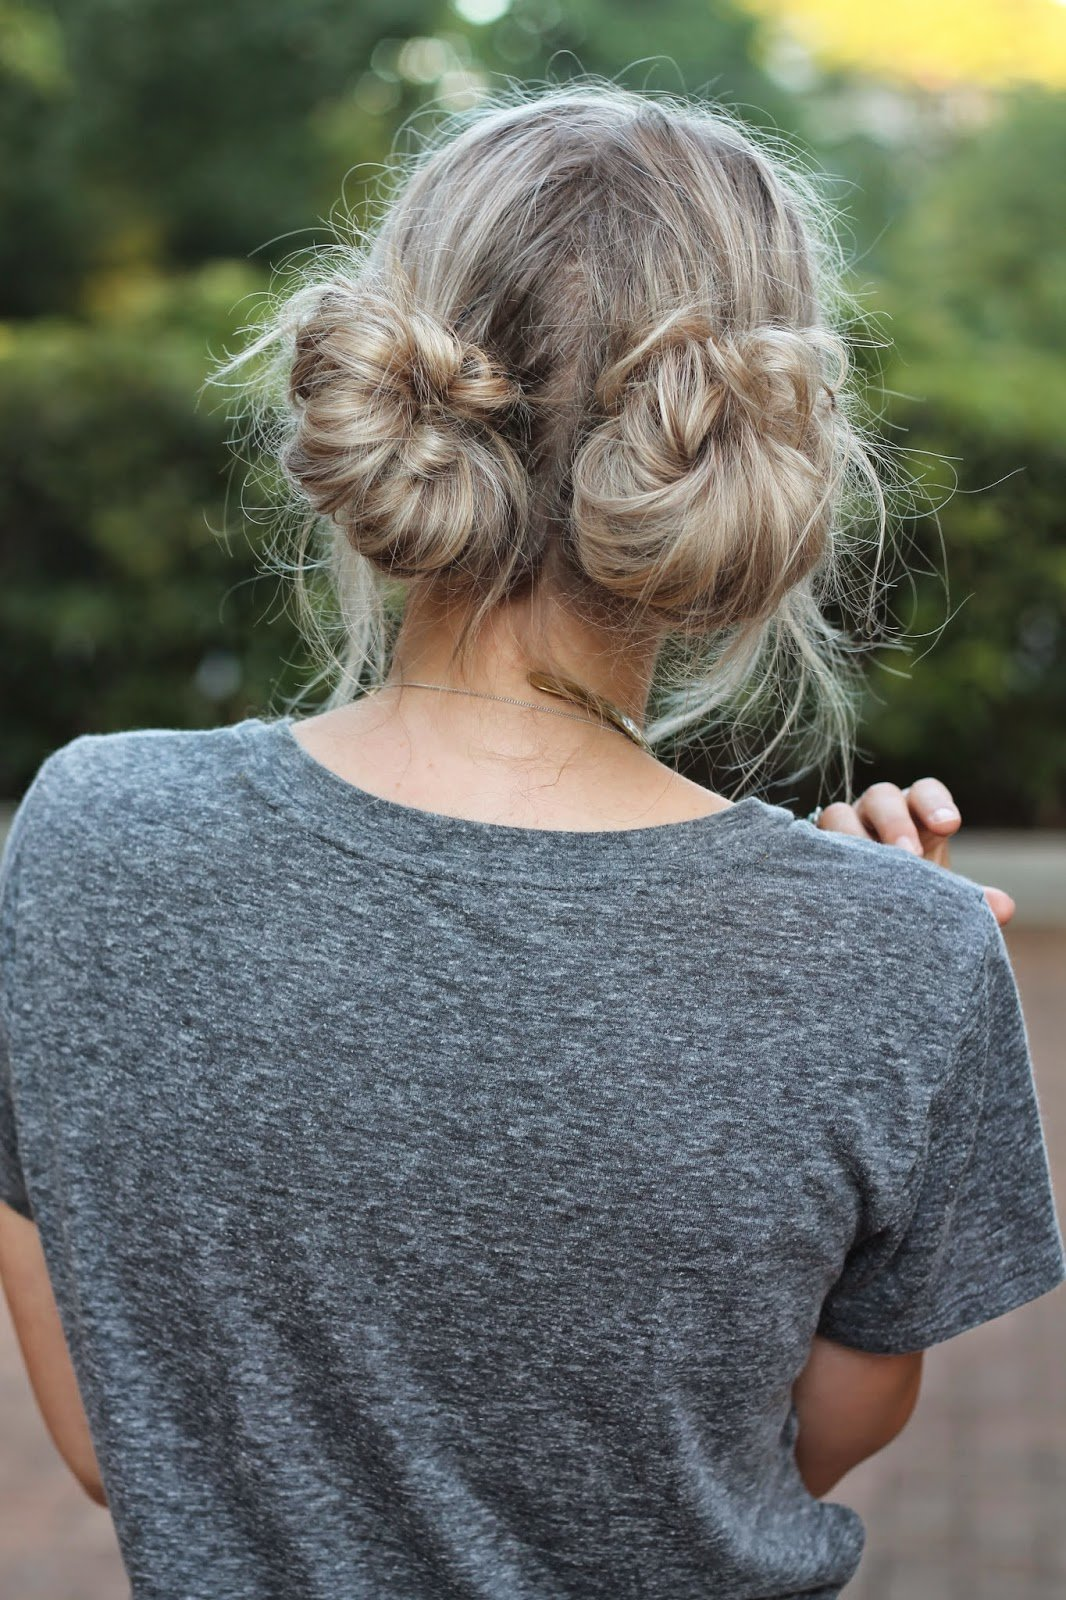 The Best Hairsiration Boho Double Bun Up Do Andrea Clare Pictures